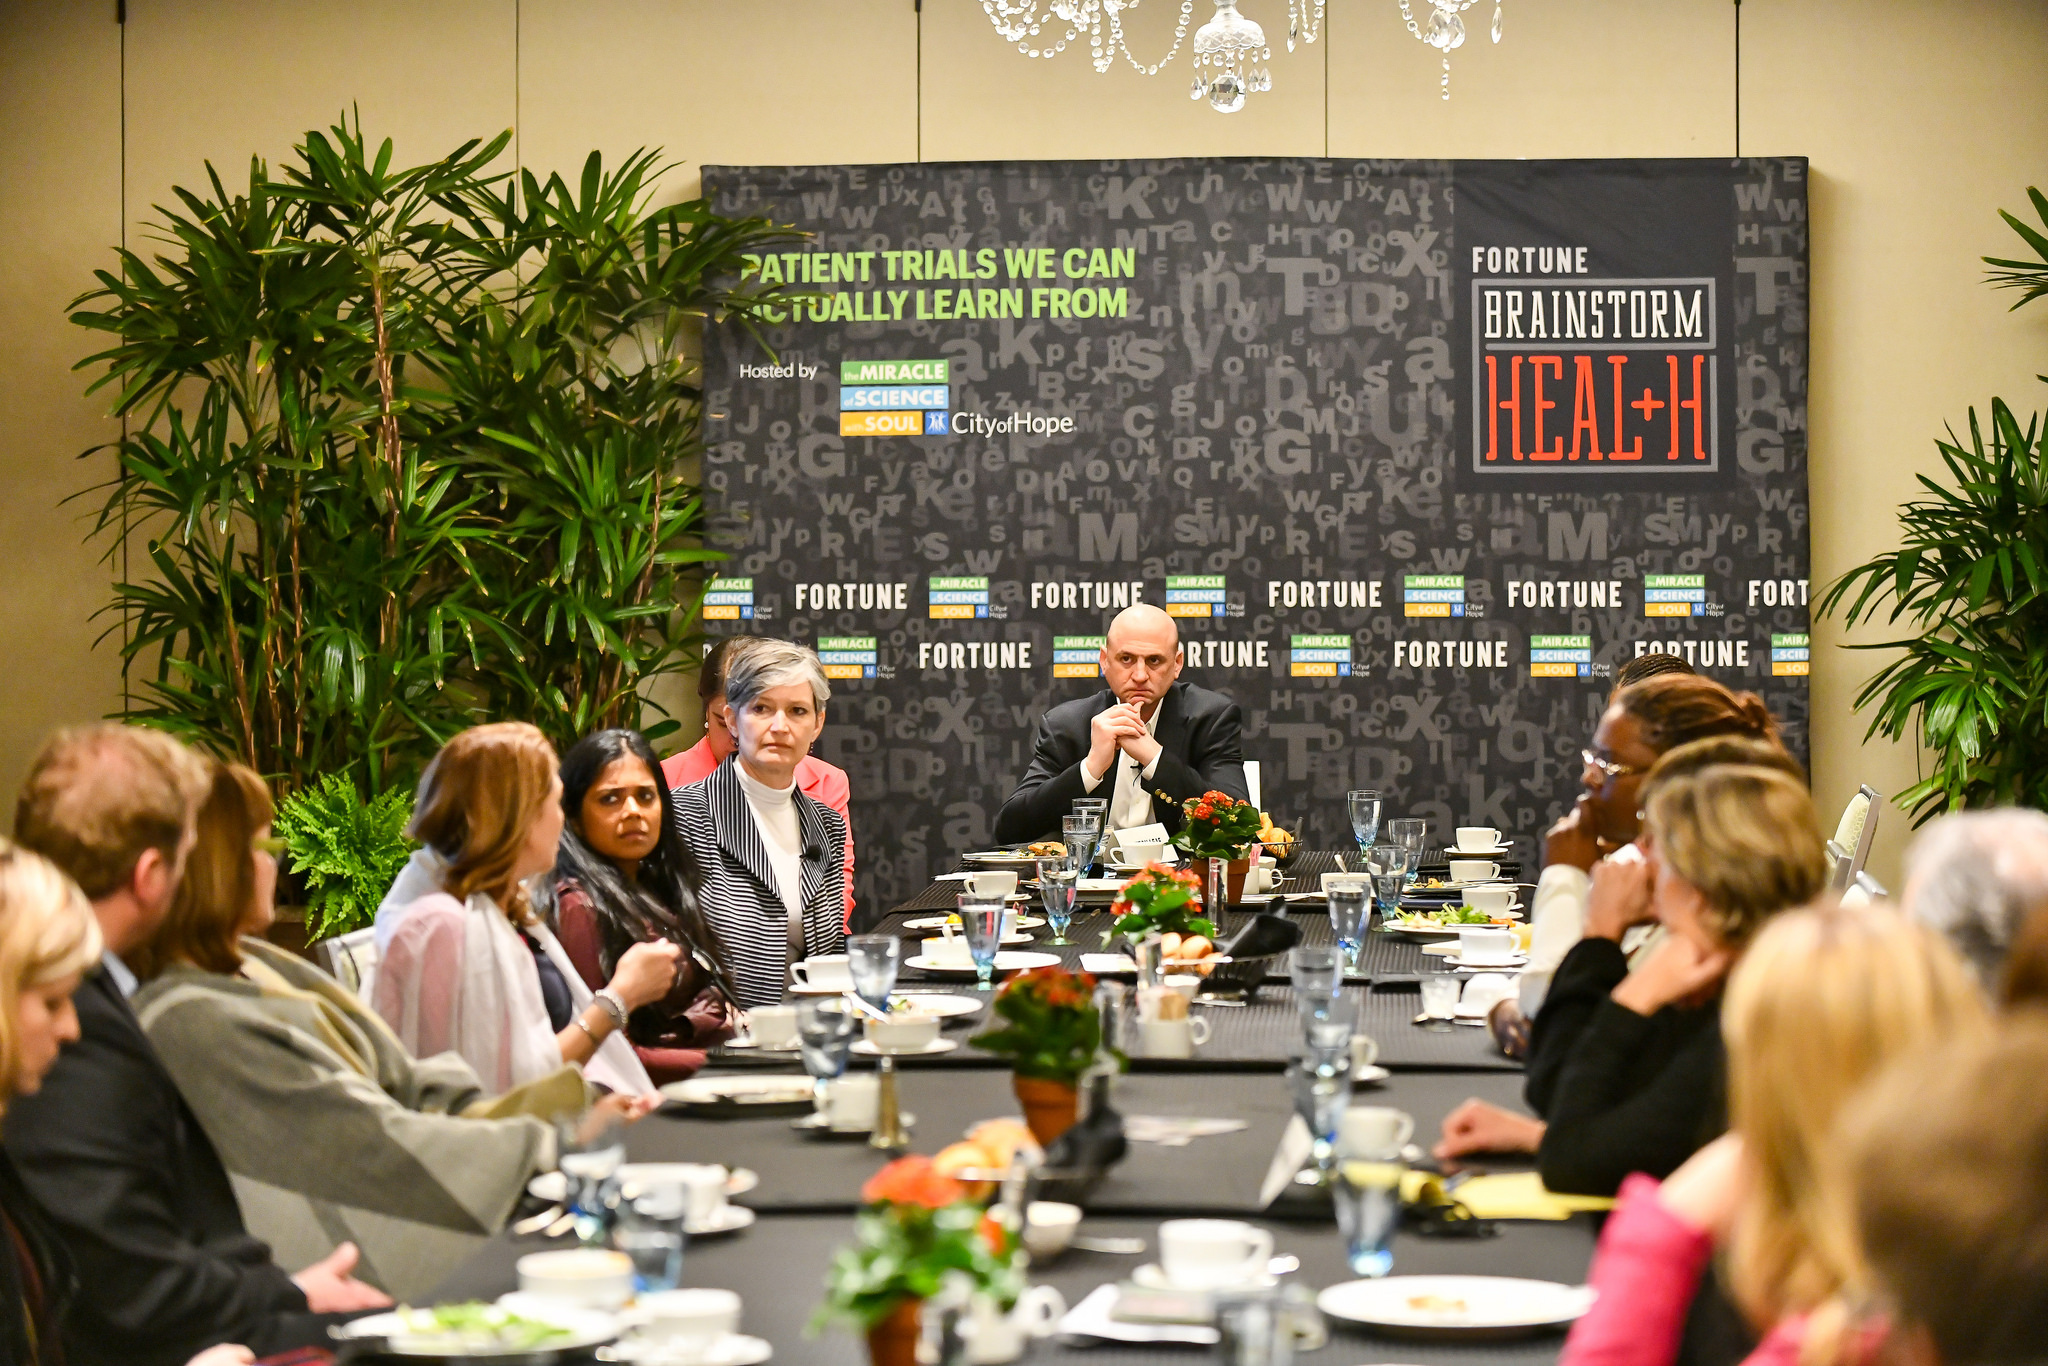 Fortune editor-in-chief Clifton Leaf presiding over a discussion about human clinical trials at the 2018 Fortune Brainstorm Health conference in Laguna Niguel, Calif.